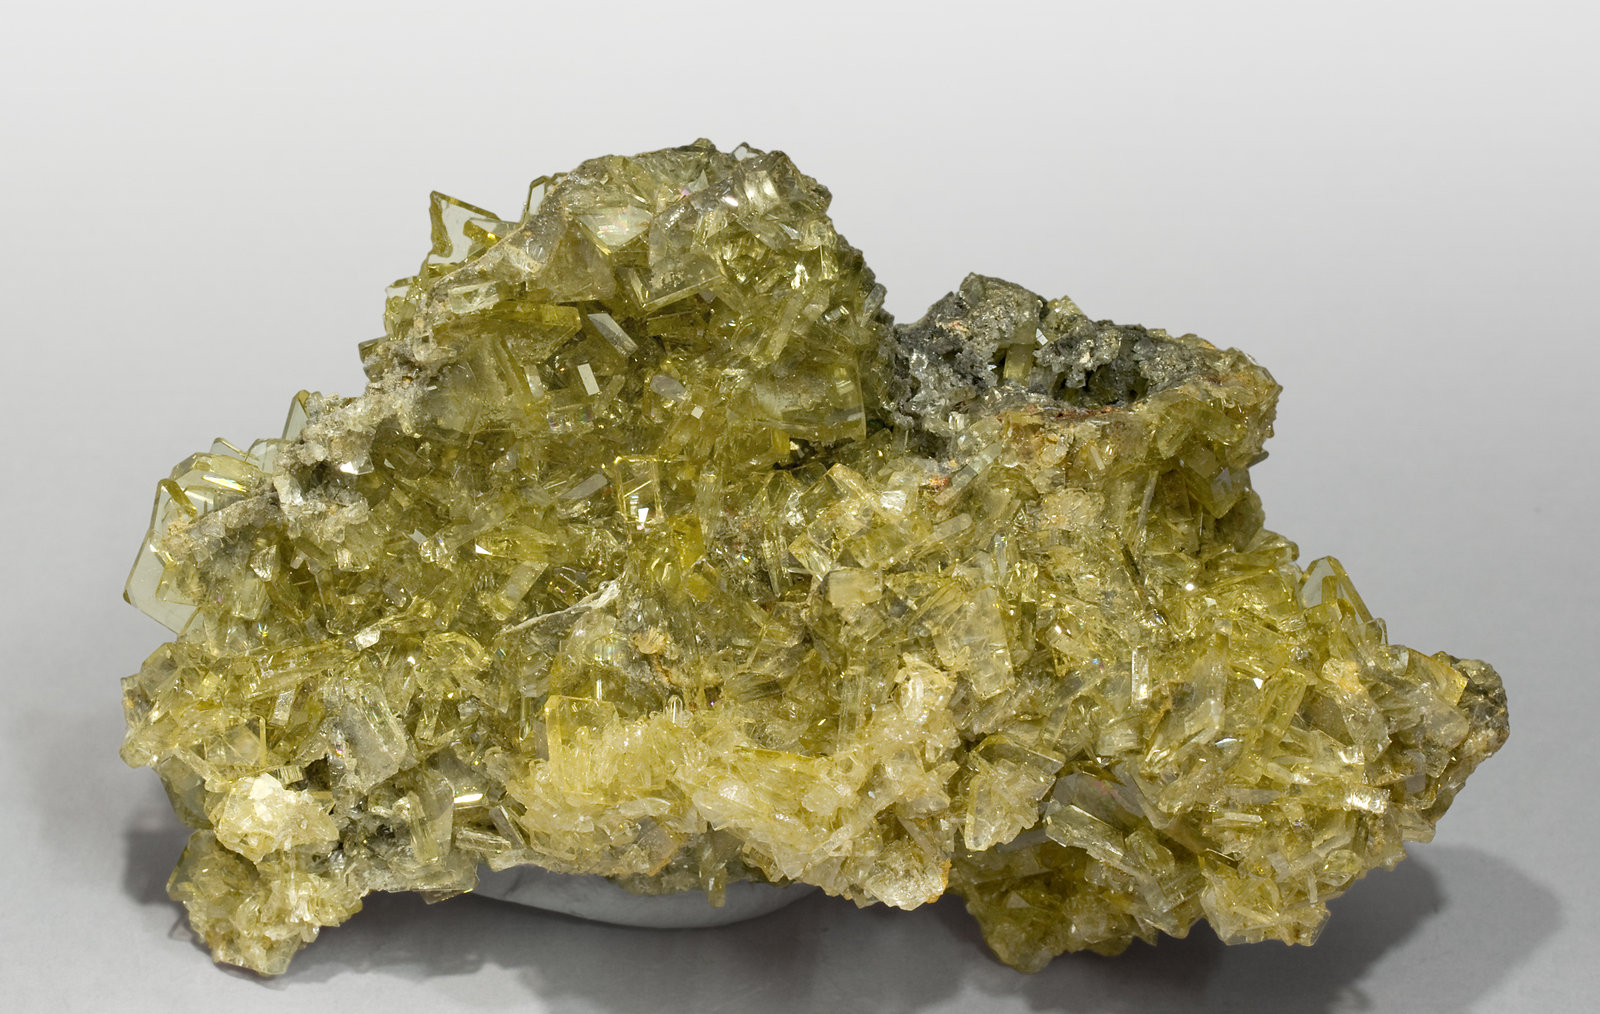 specimens/s_imagesT6/Barite-TA86T6f.jpg